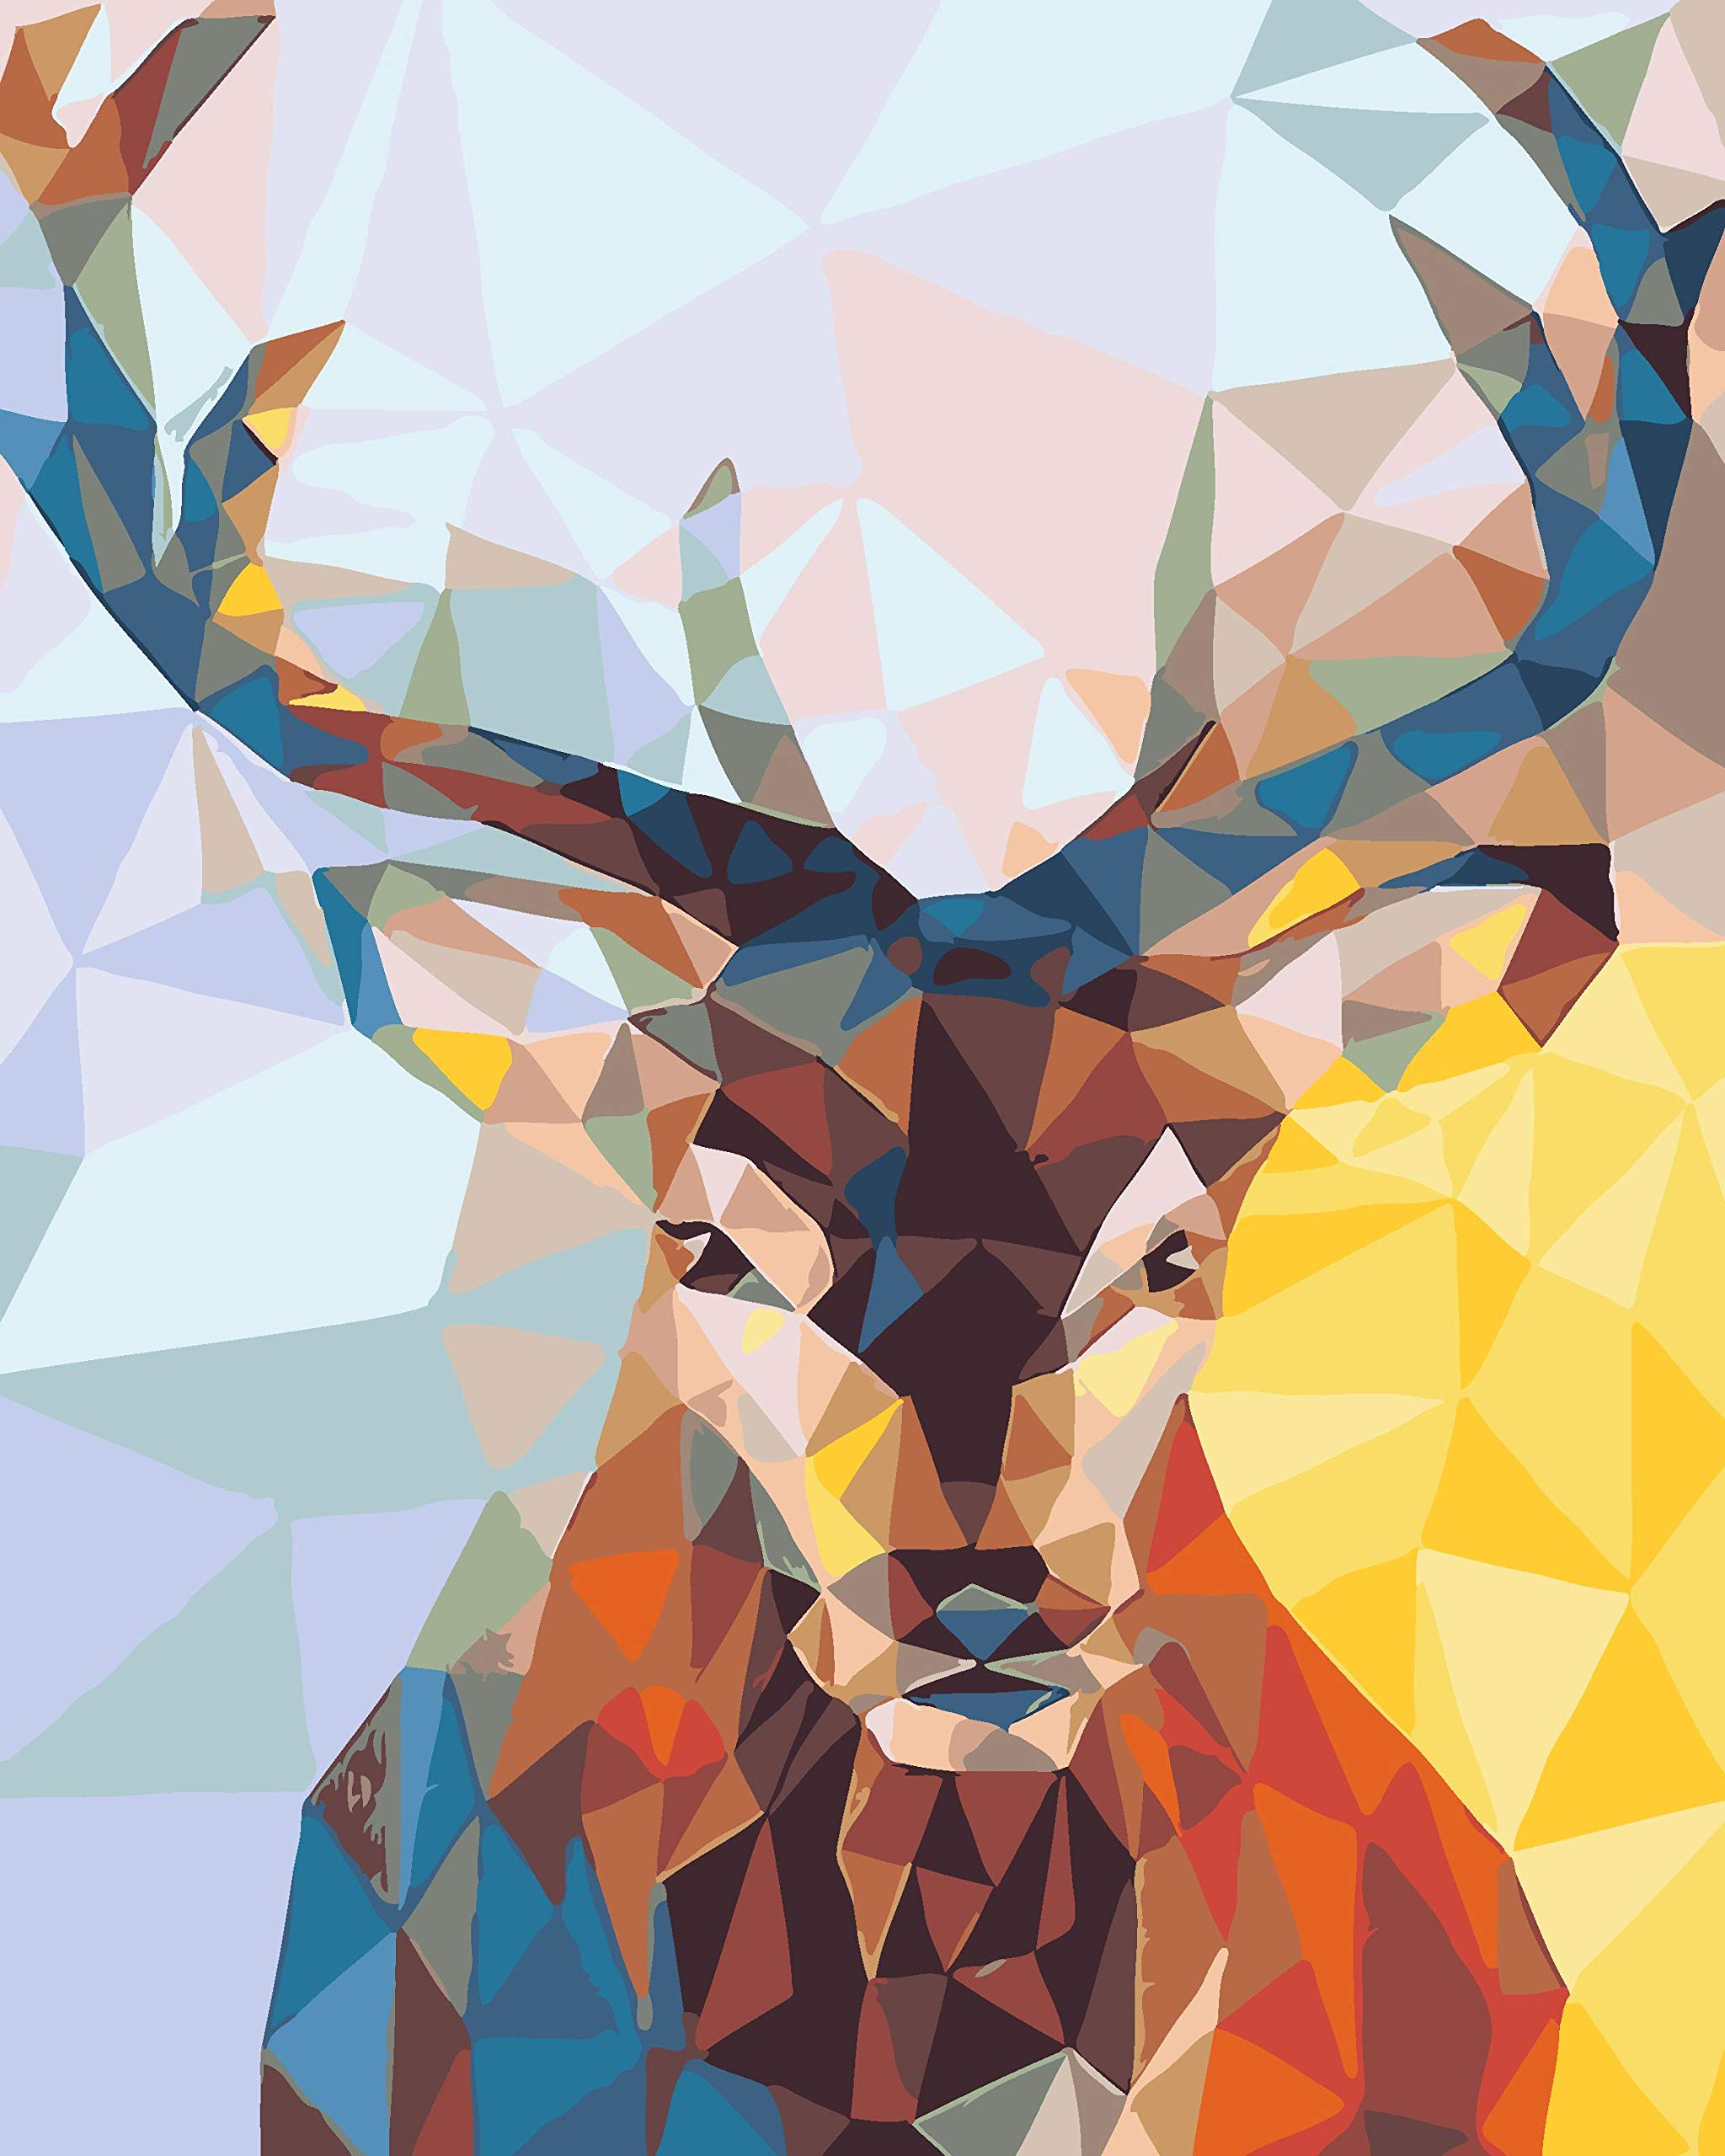 DIY Paint by Numbers Kit for Adults - Christmas Deer Doe | Paint by Numbers Landscape Scene Paintings Arts Craft for Home Wall Decor | Pre-Printed Art-Quality Canvas 20'' x 16'', 3 Brushes, 24 Paints by Alto Crafto